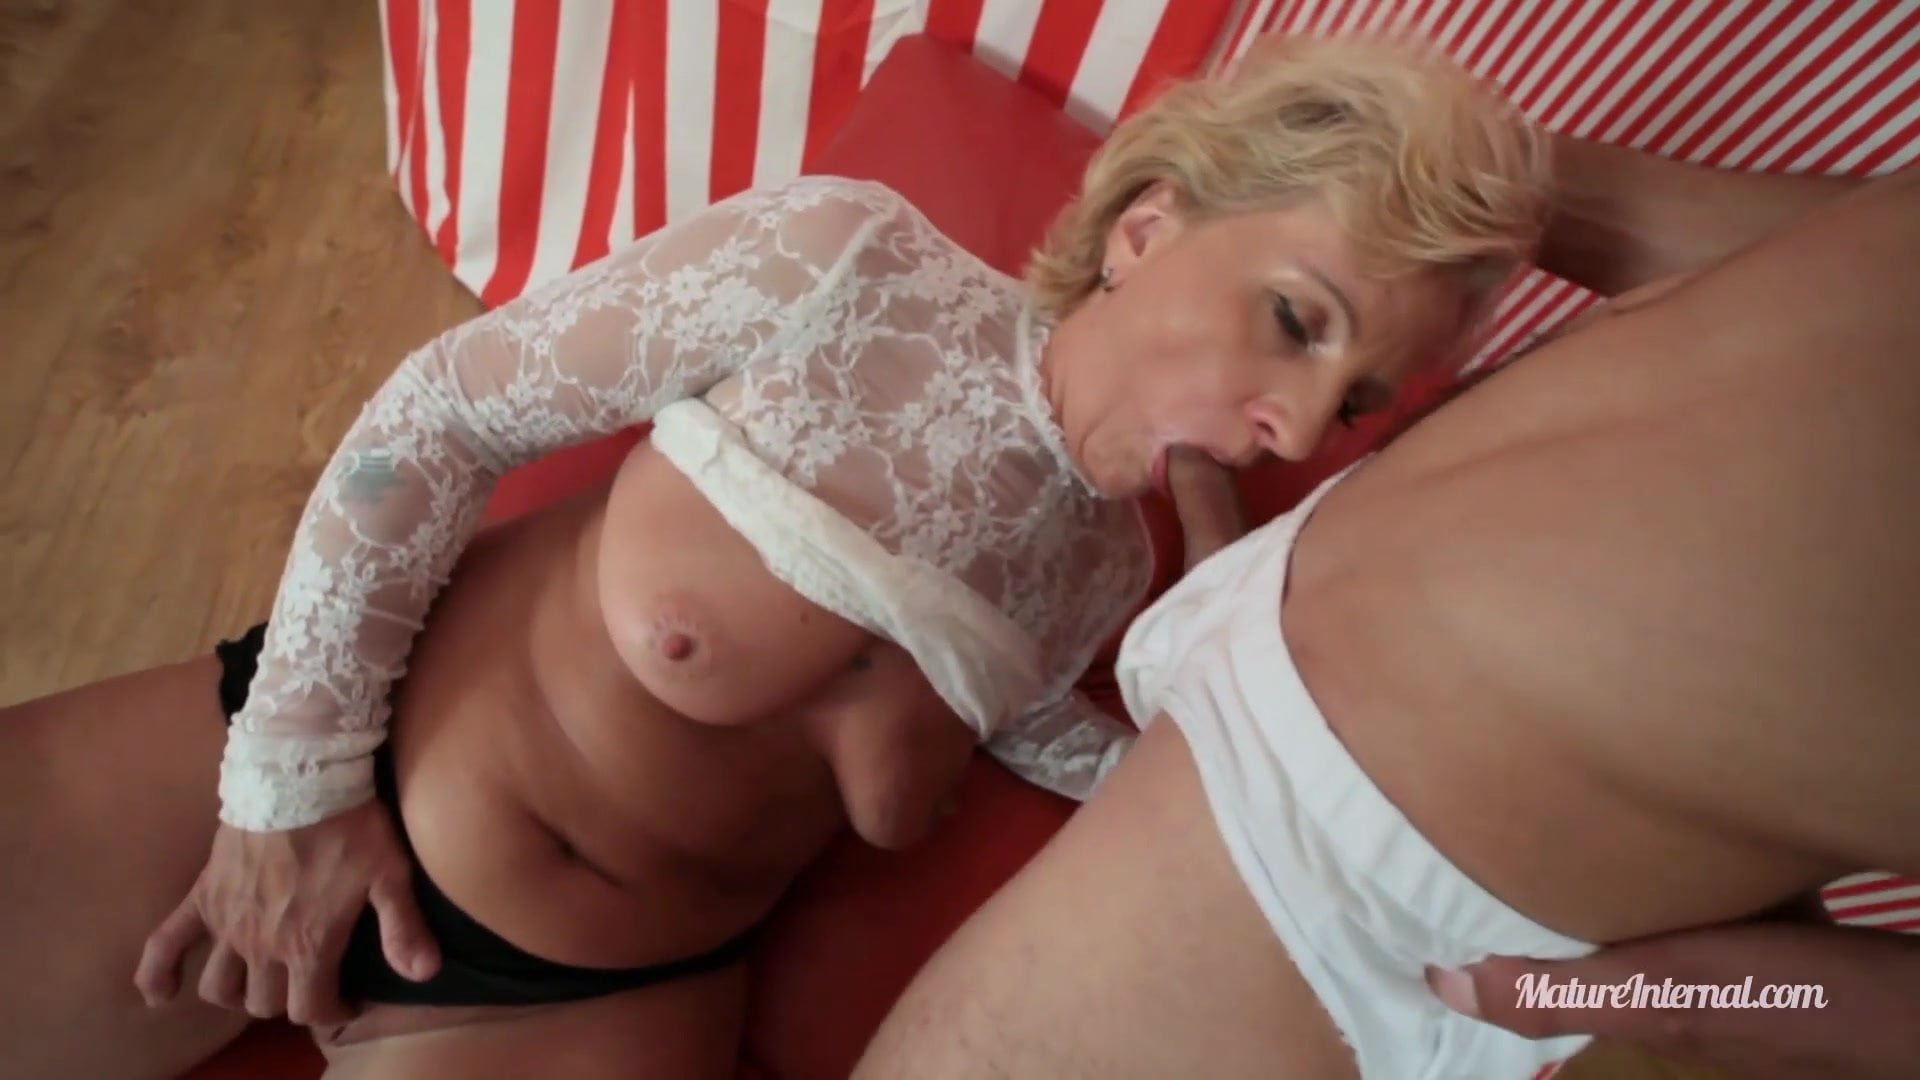 Busty mature finally found young cock for her pussy!